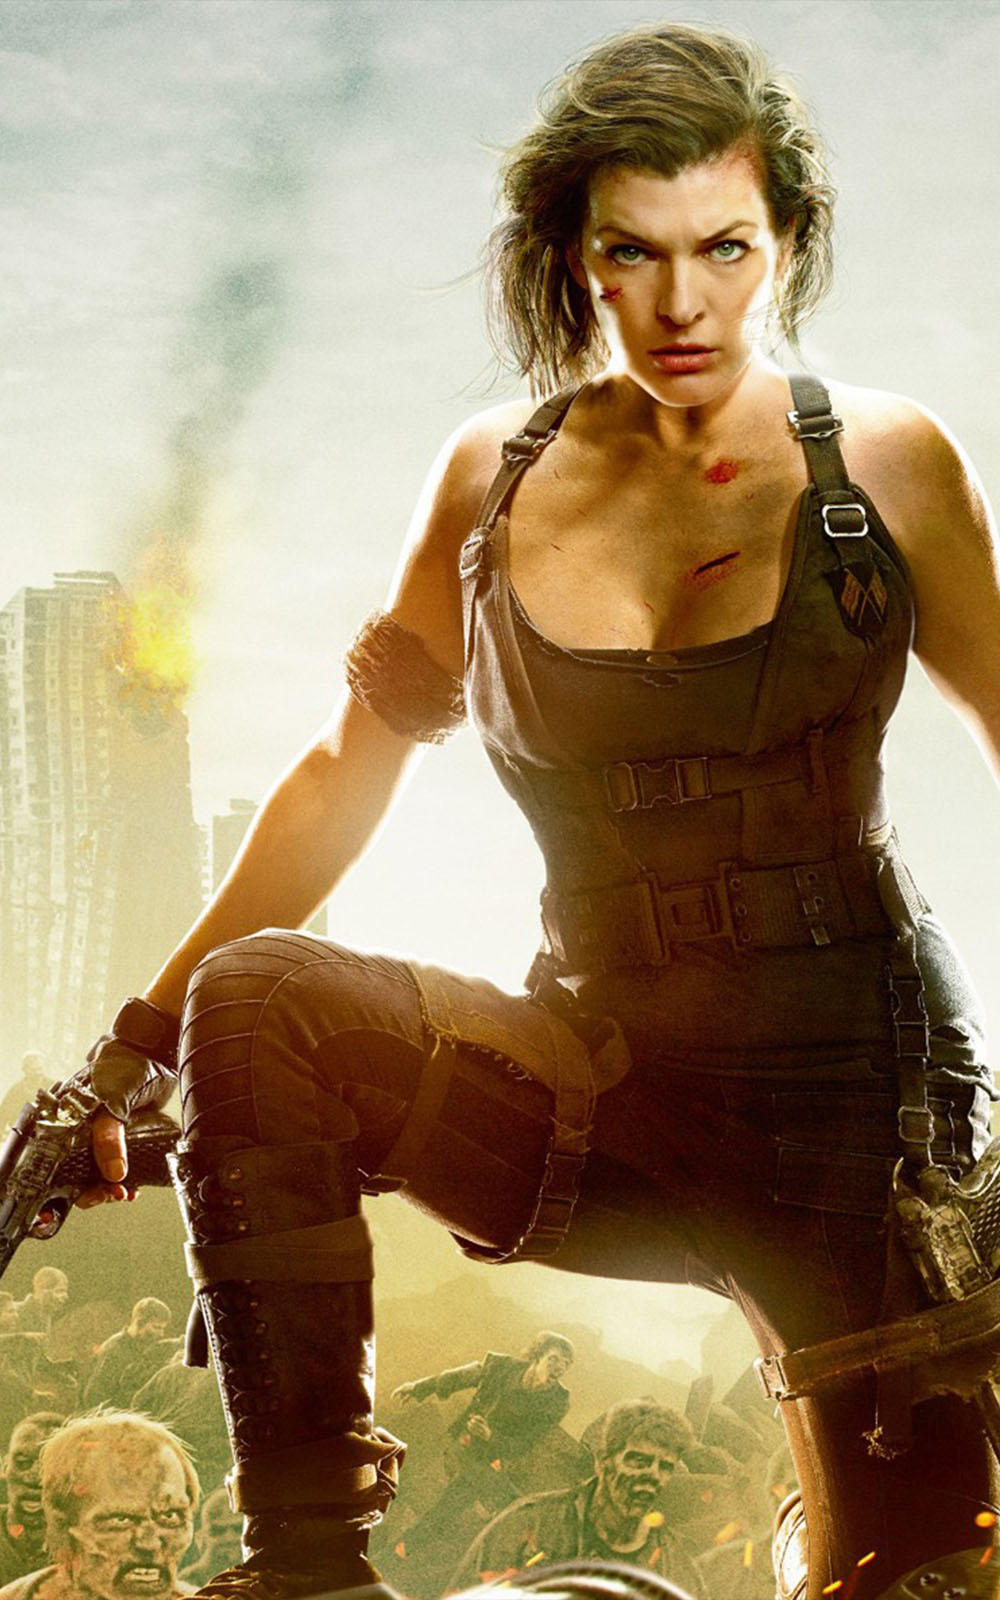 Download Wallpaper - Resident Evil The Final Chapter Alice (#1974420) - HD  Wallpaper & Backgrounds Download